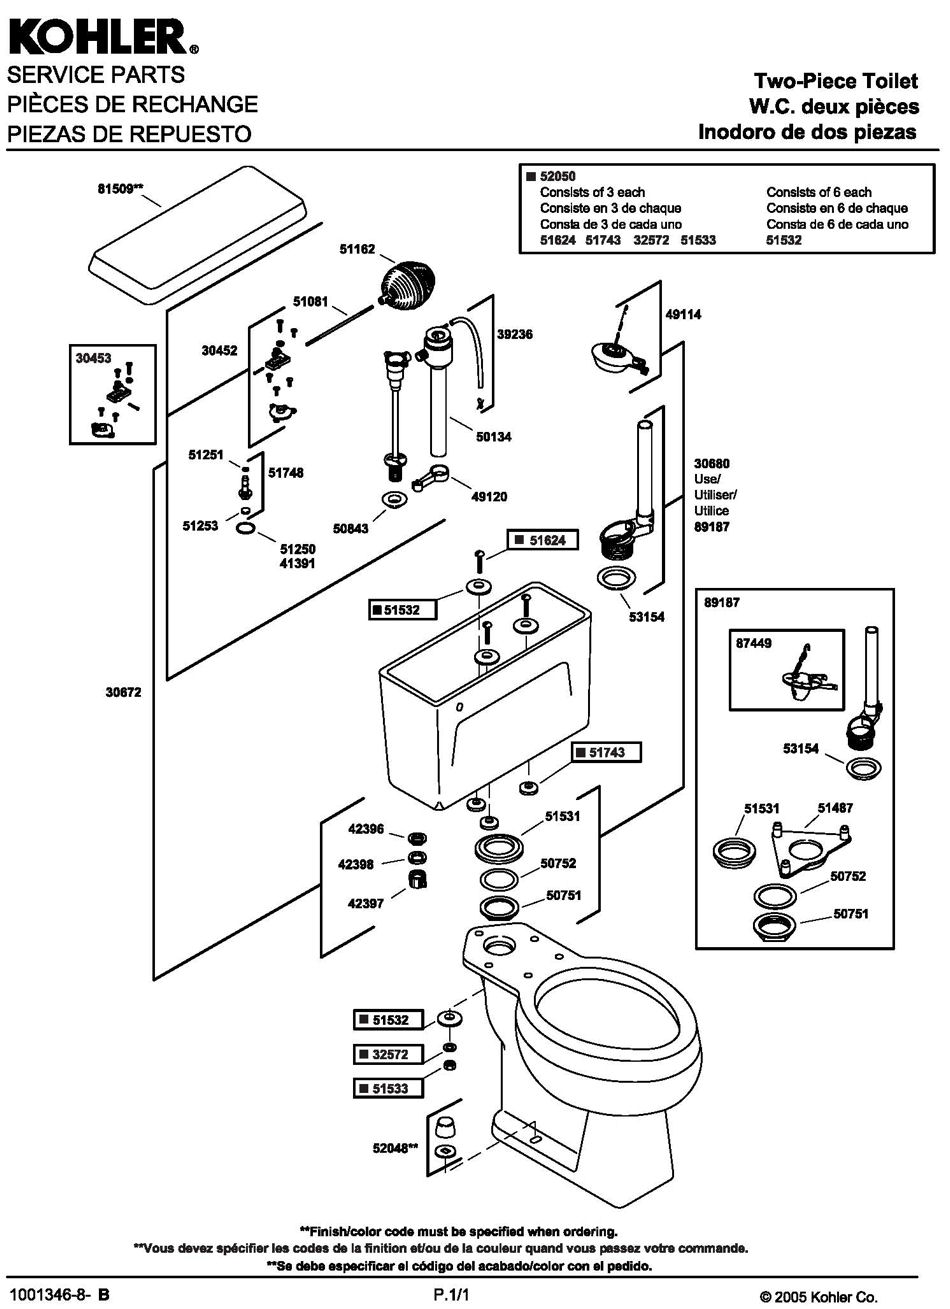 kohler toilet diagram  kohler  free engine image for user